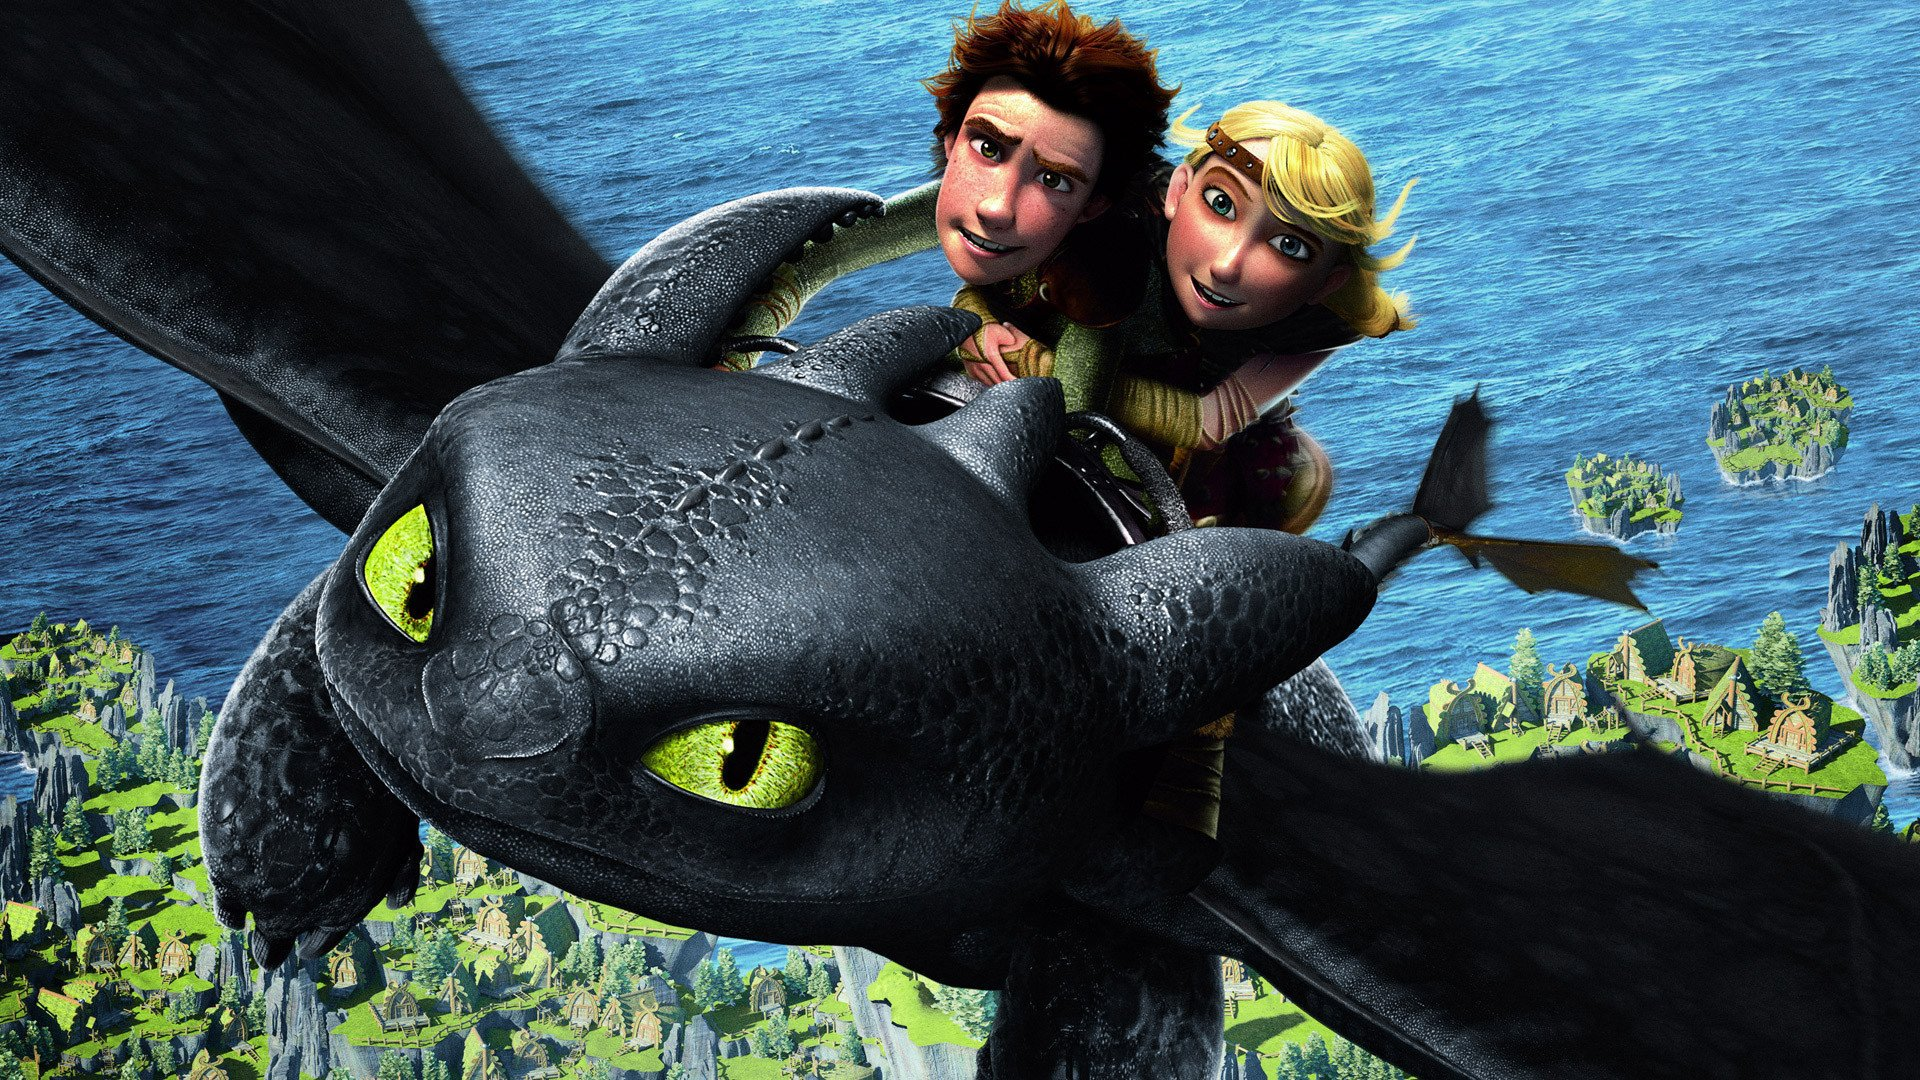 How To Train Your Dragon Full HD Wallpaper And Background Image